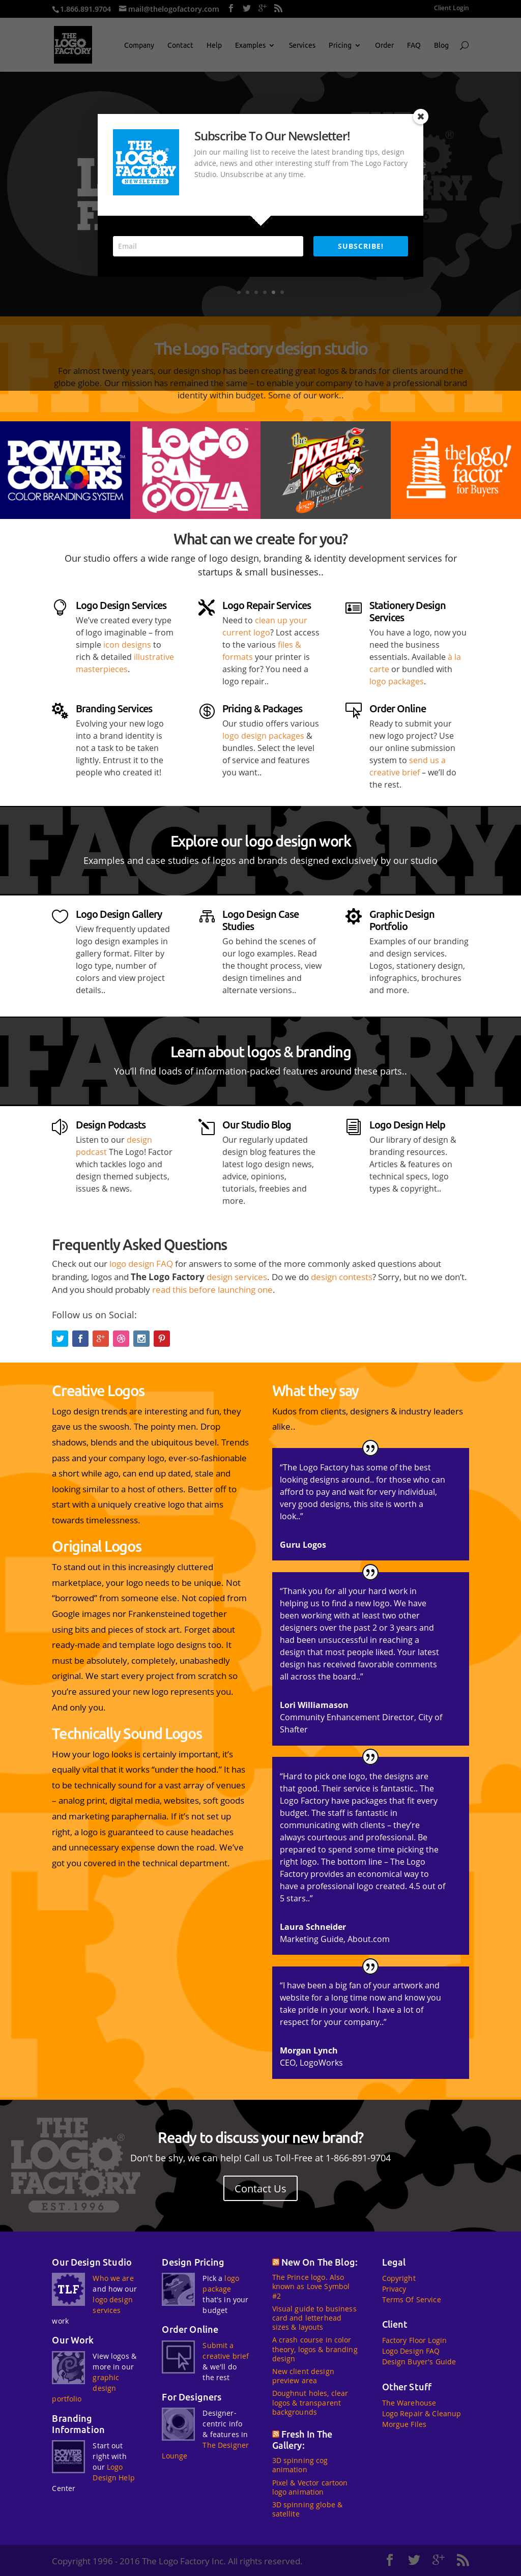 The Logo Factory Competitors, Revenue and Employees - Owler Company